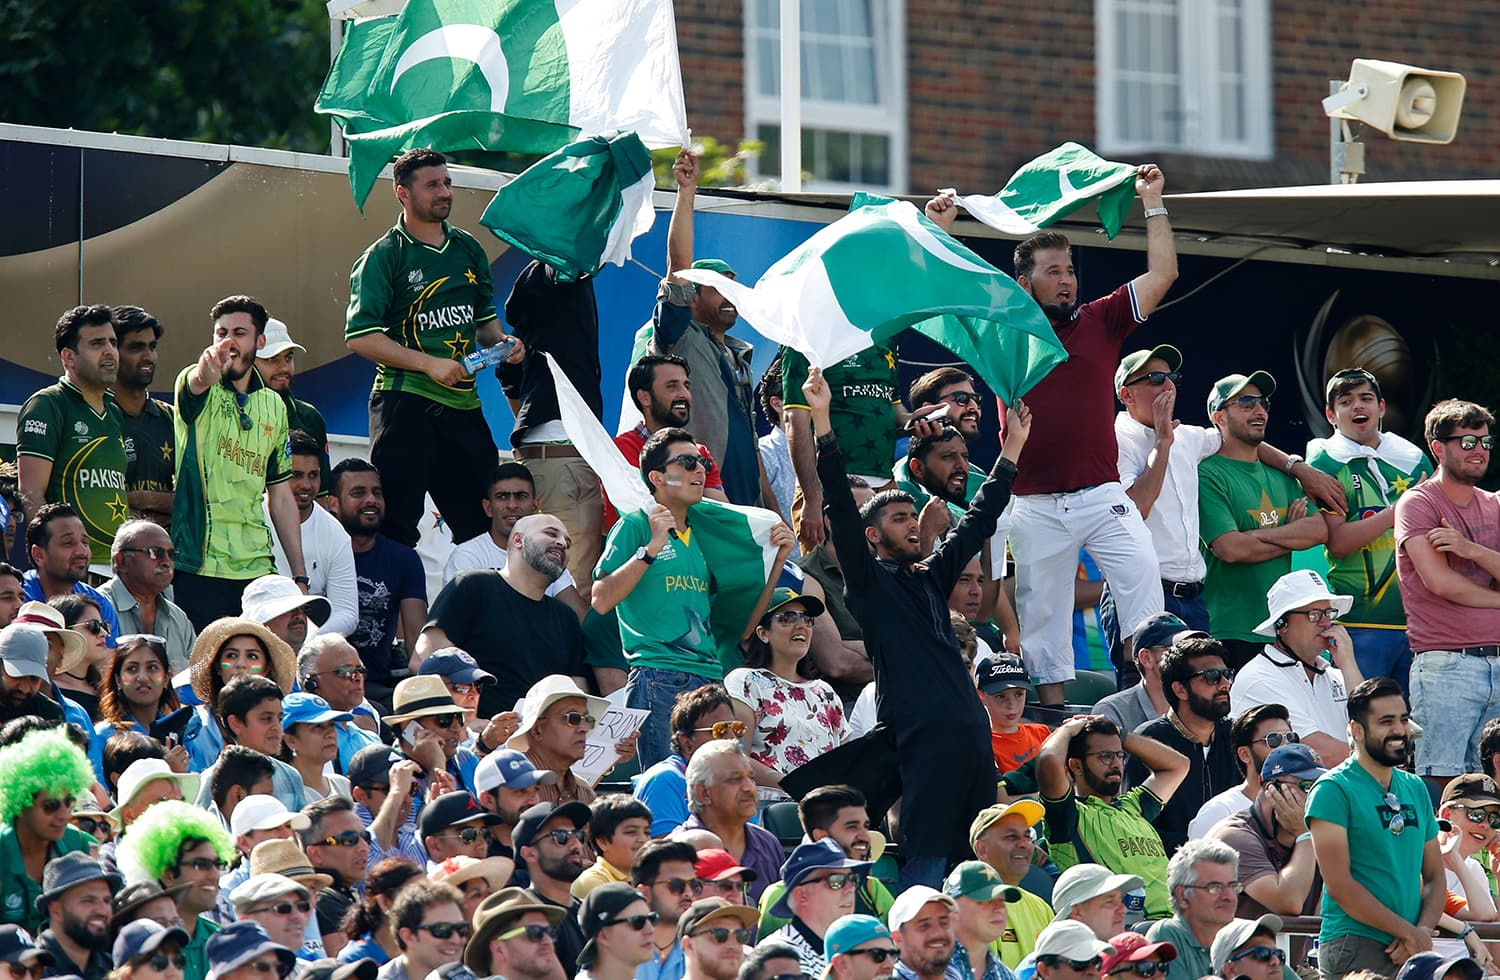 Pakistani supporters go wild as the team wins big. — AFP